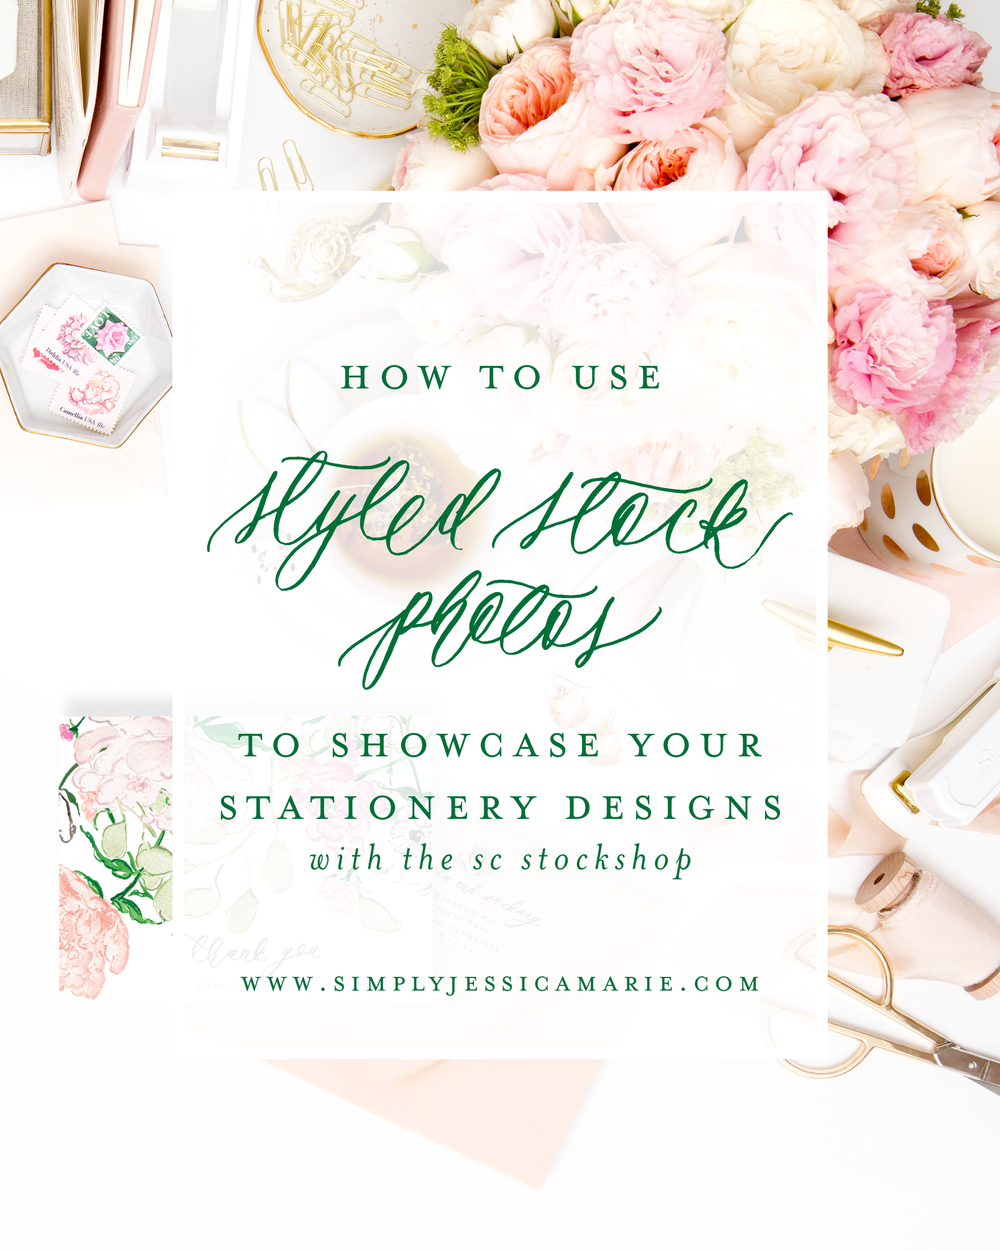 How to use styled stock photography to showcase stationery designs | Styled stock photography tutorial by Simply Jessica Marie for SC Stockshop